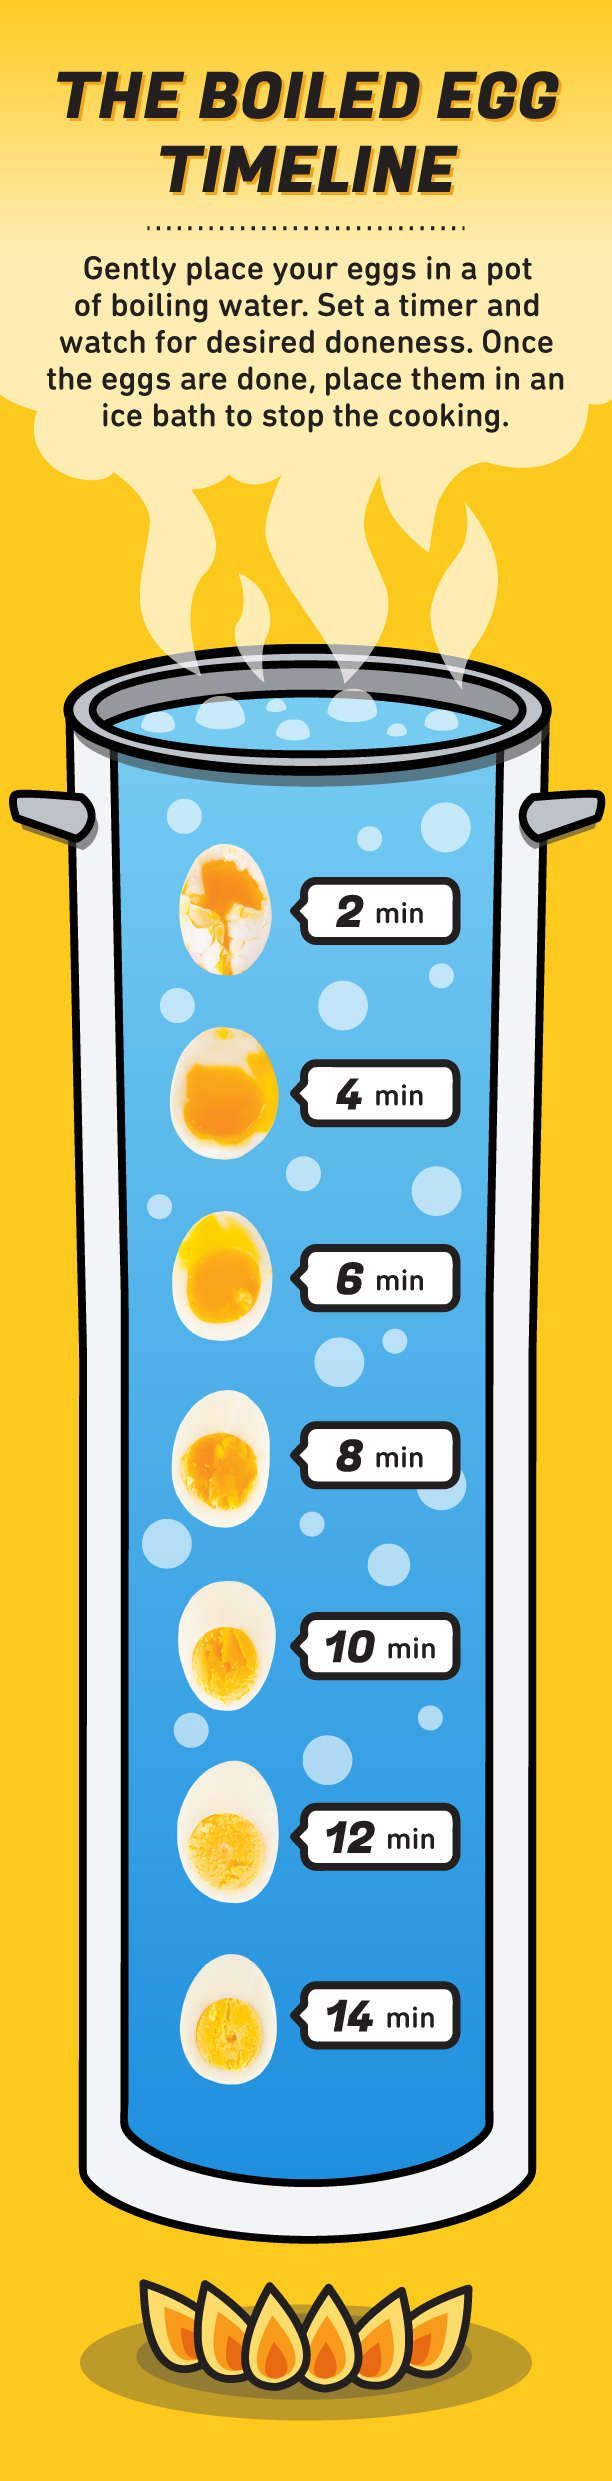 How To Make Perfect Boiled Eggs Every Time